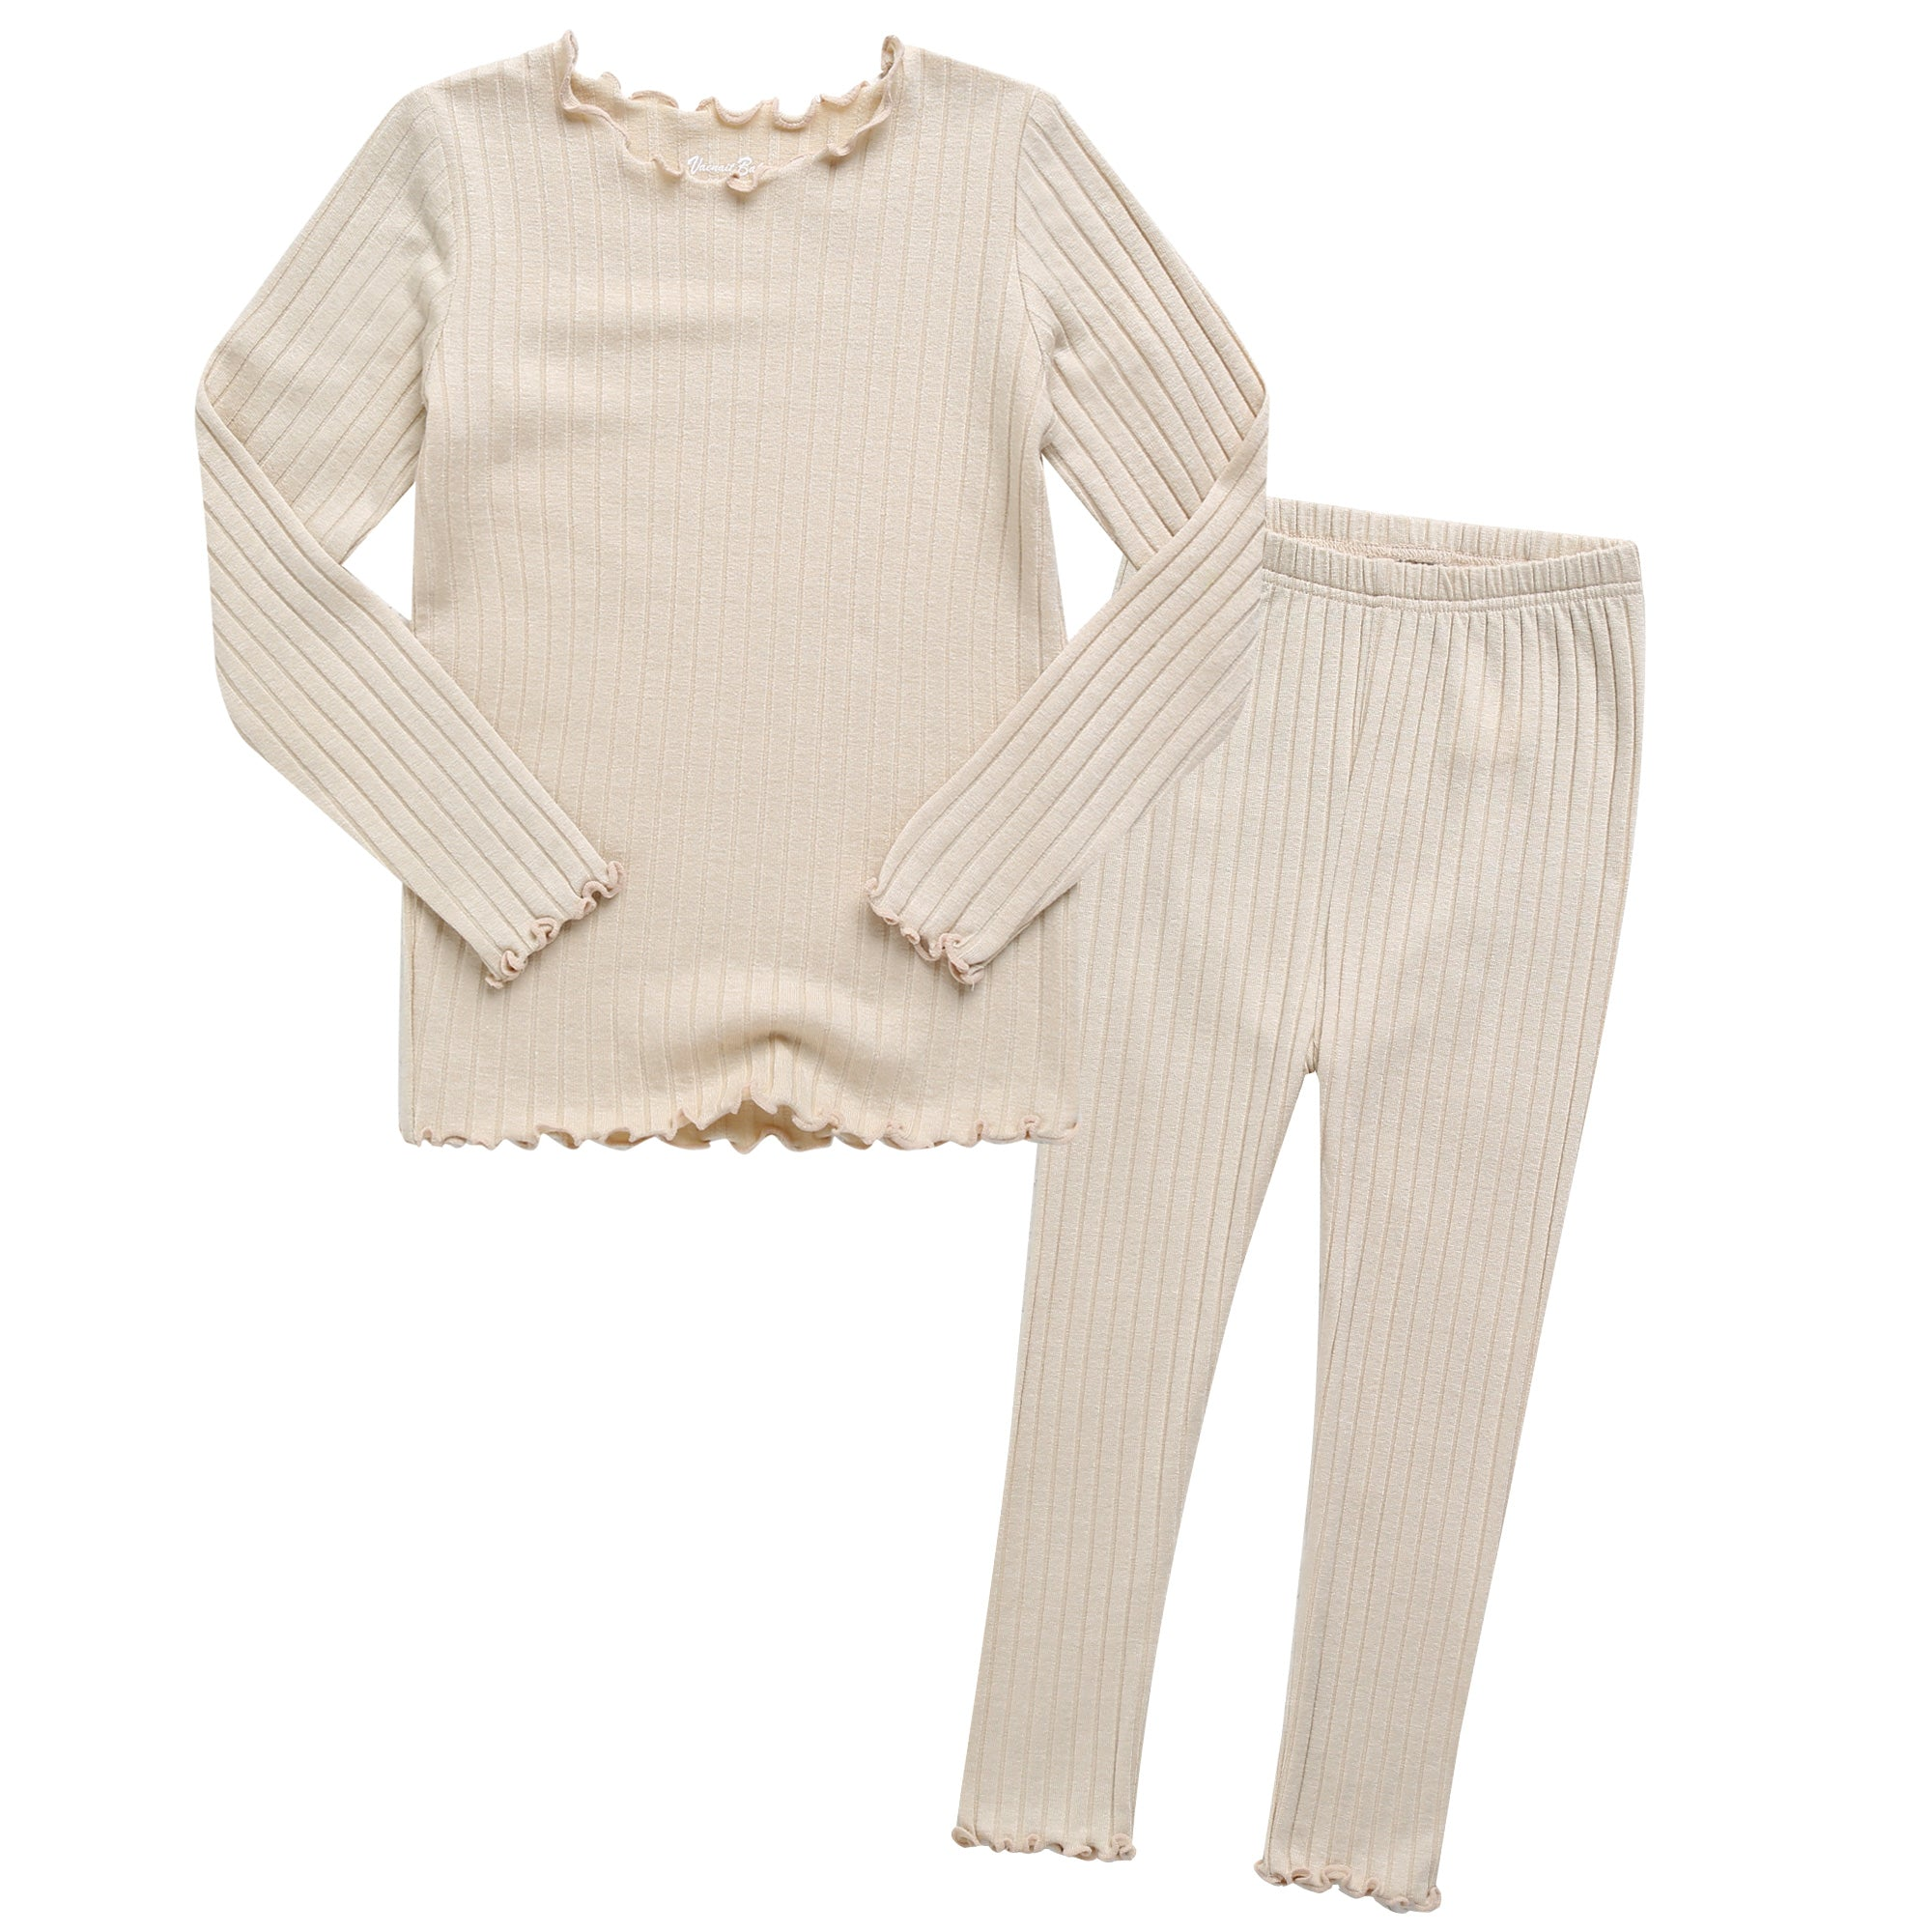 Toddler Kids Lettuce-Edge Ribbed Long Sleeve Top and Leggings 2 Piece Set - Ivory